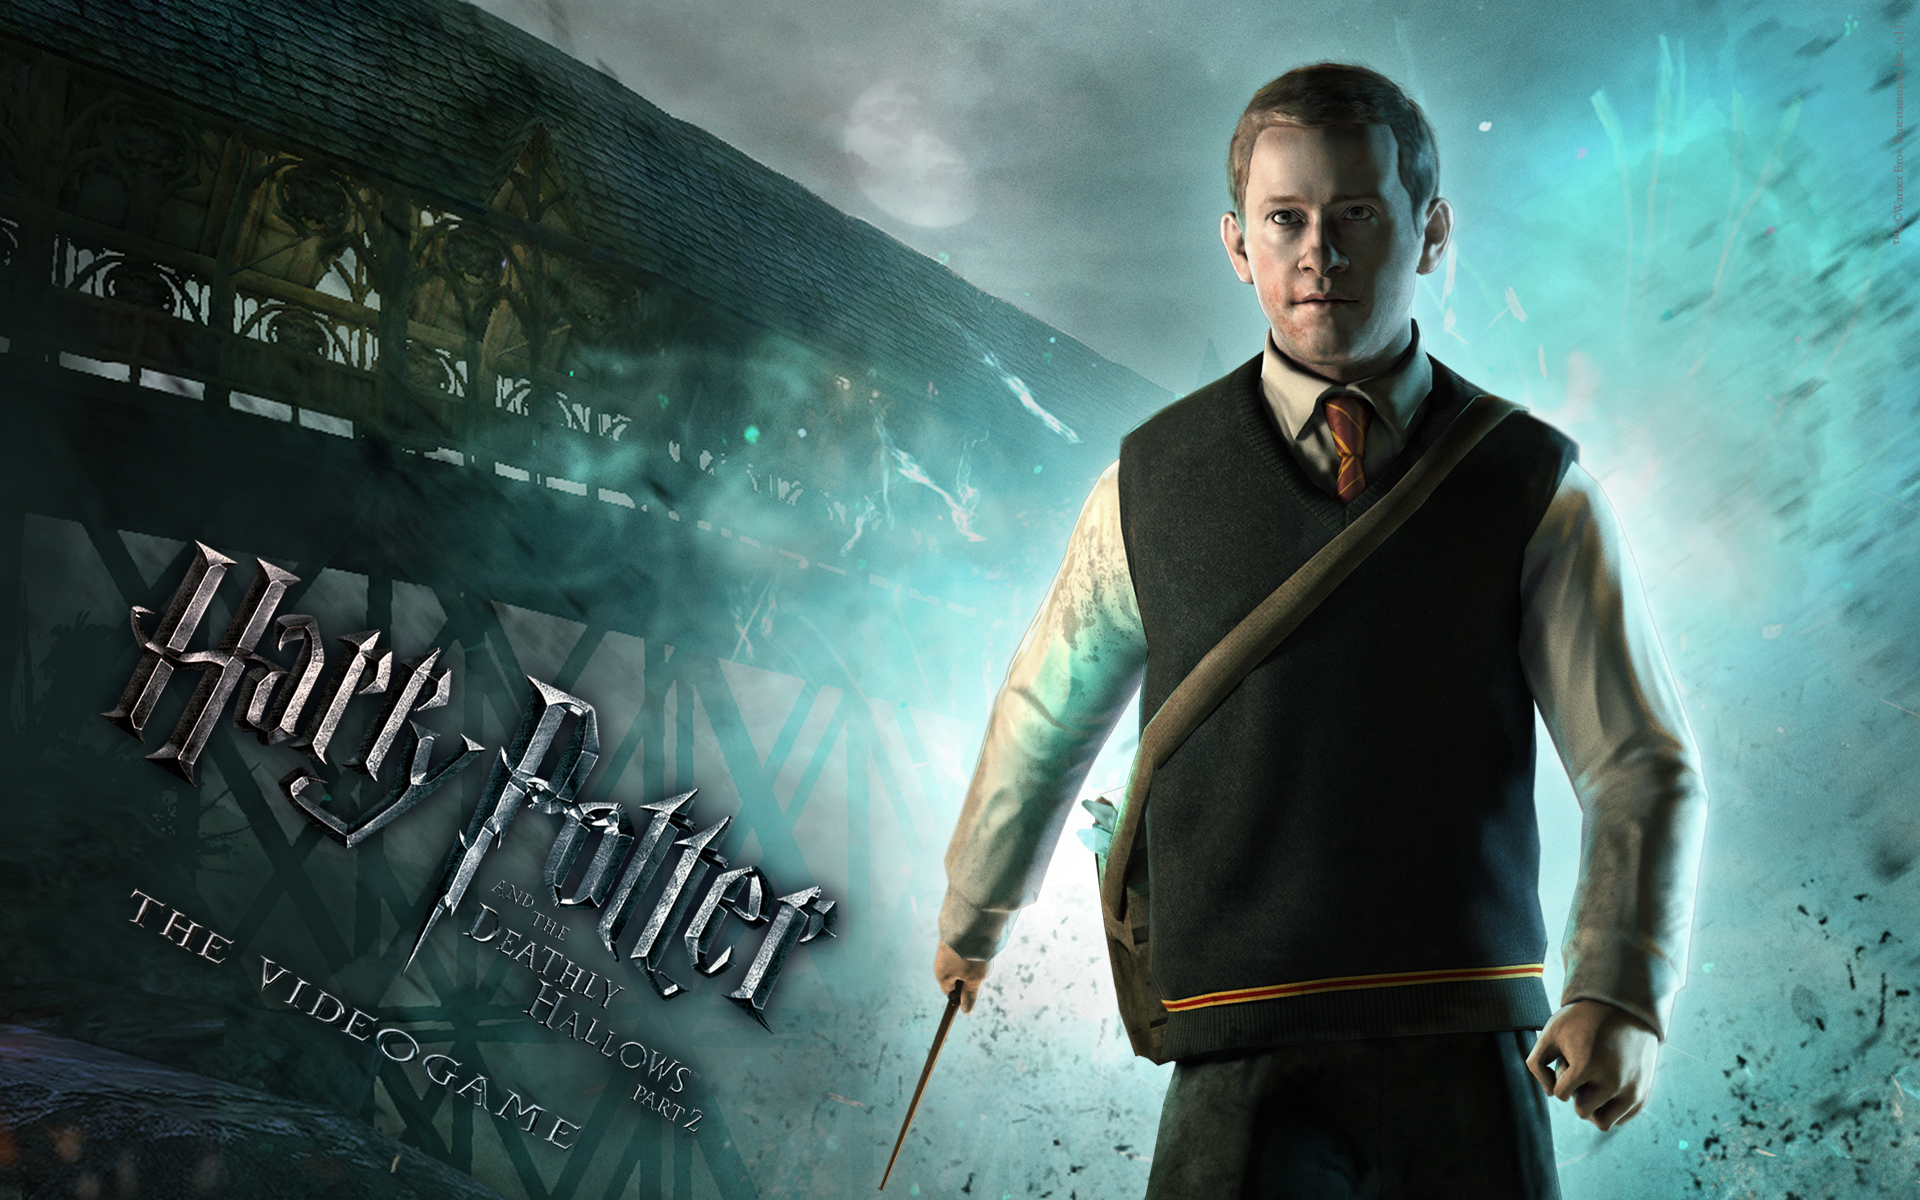 Must see Wallpaper Harry Potter Deathly Hallows - harry-potter-and-the-deathly-hallows-part-2-game-wallpaper-seamus  Photograph_984350.jpg